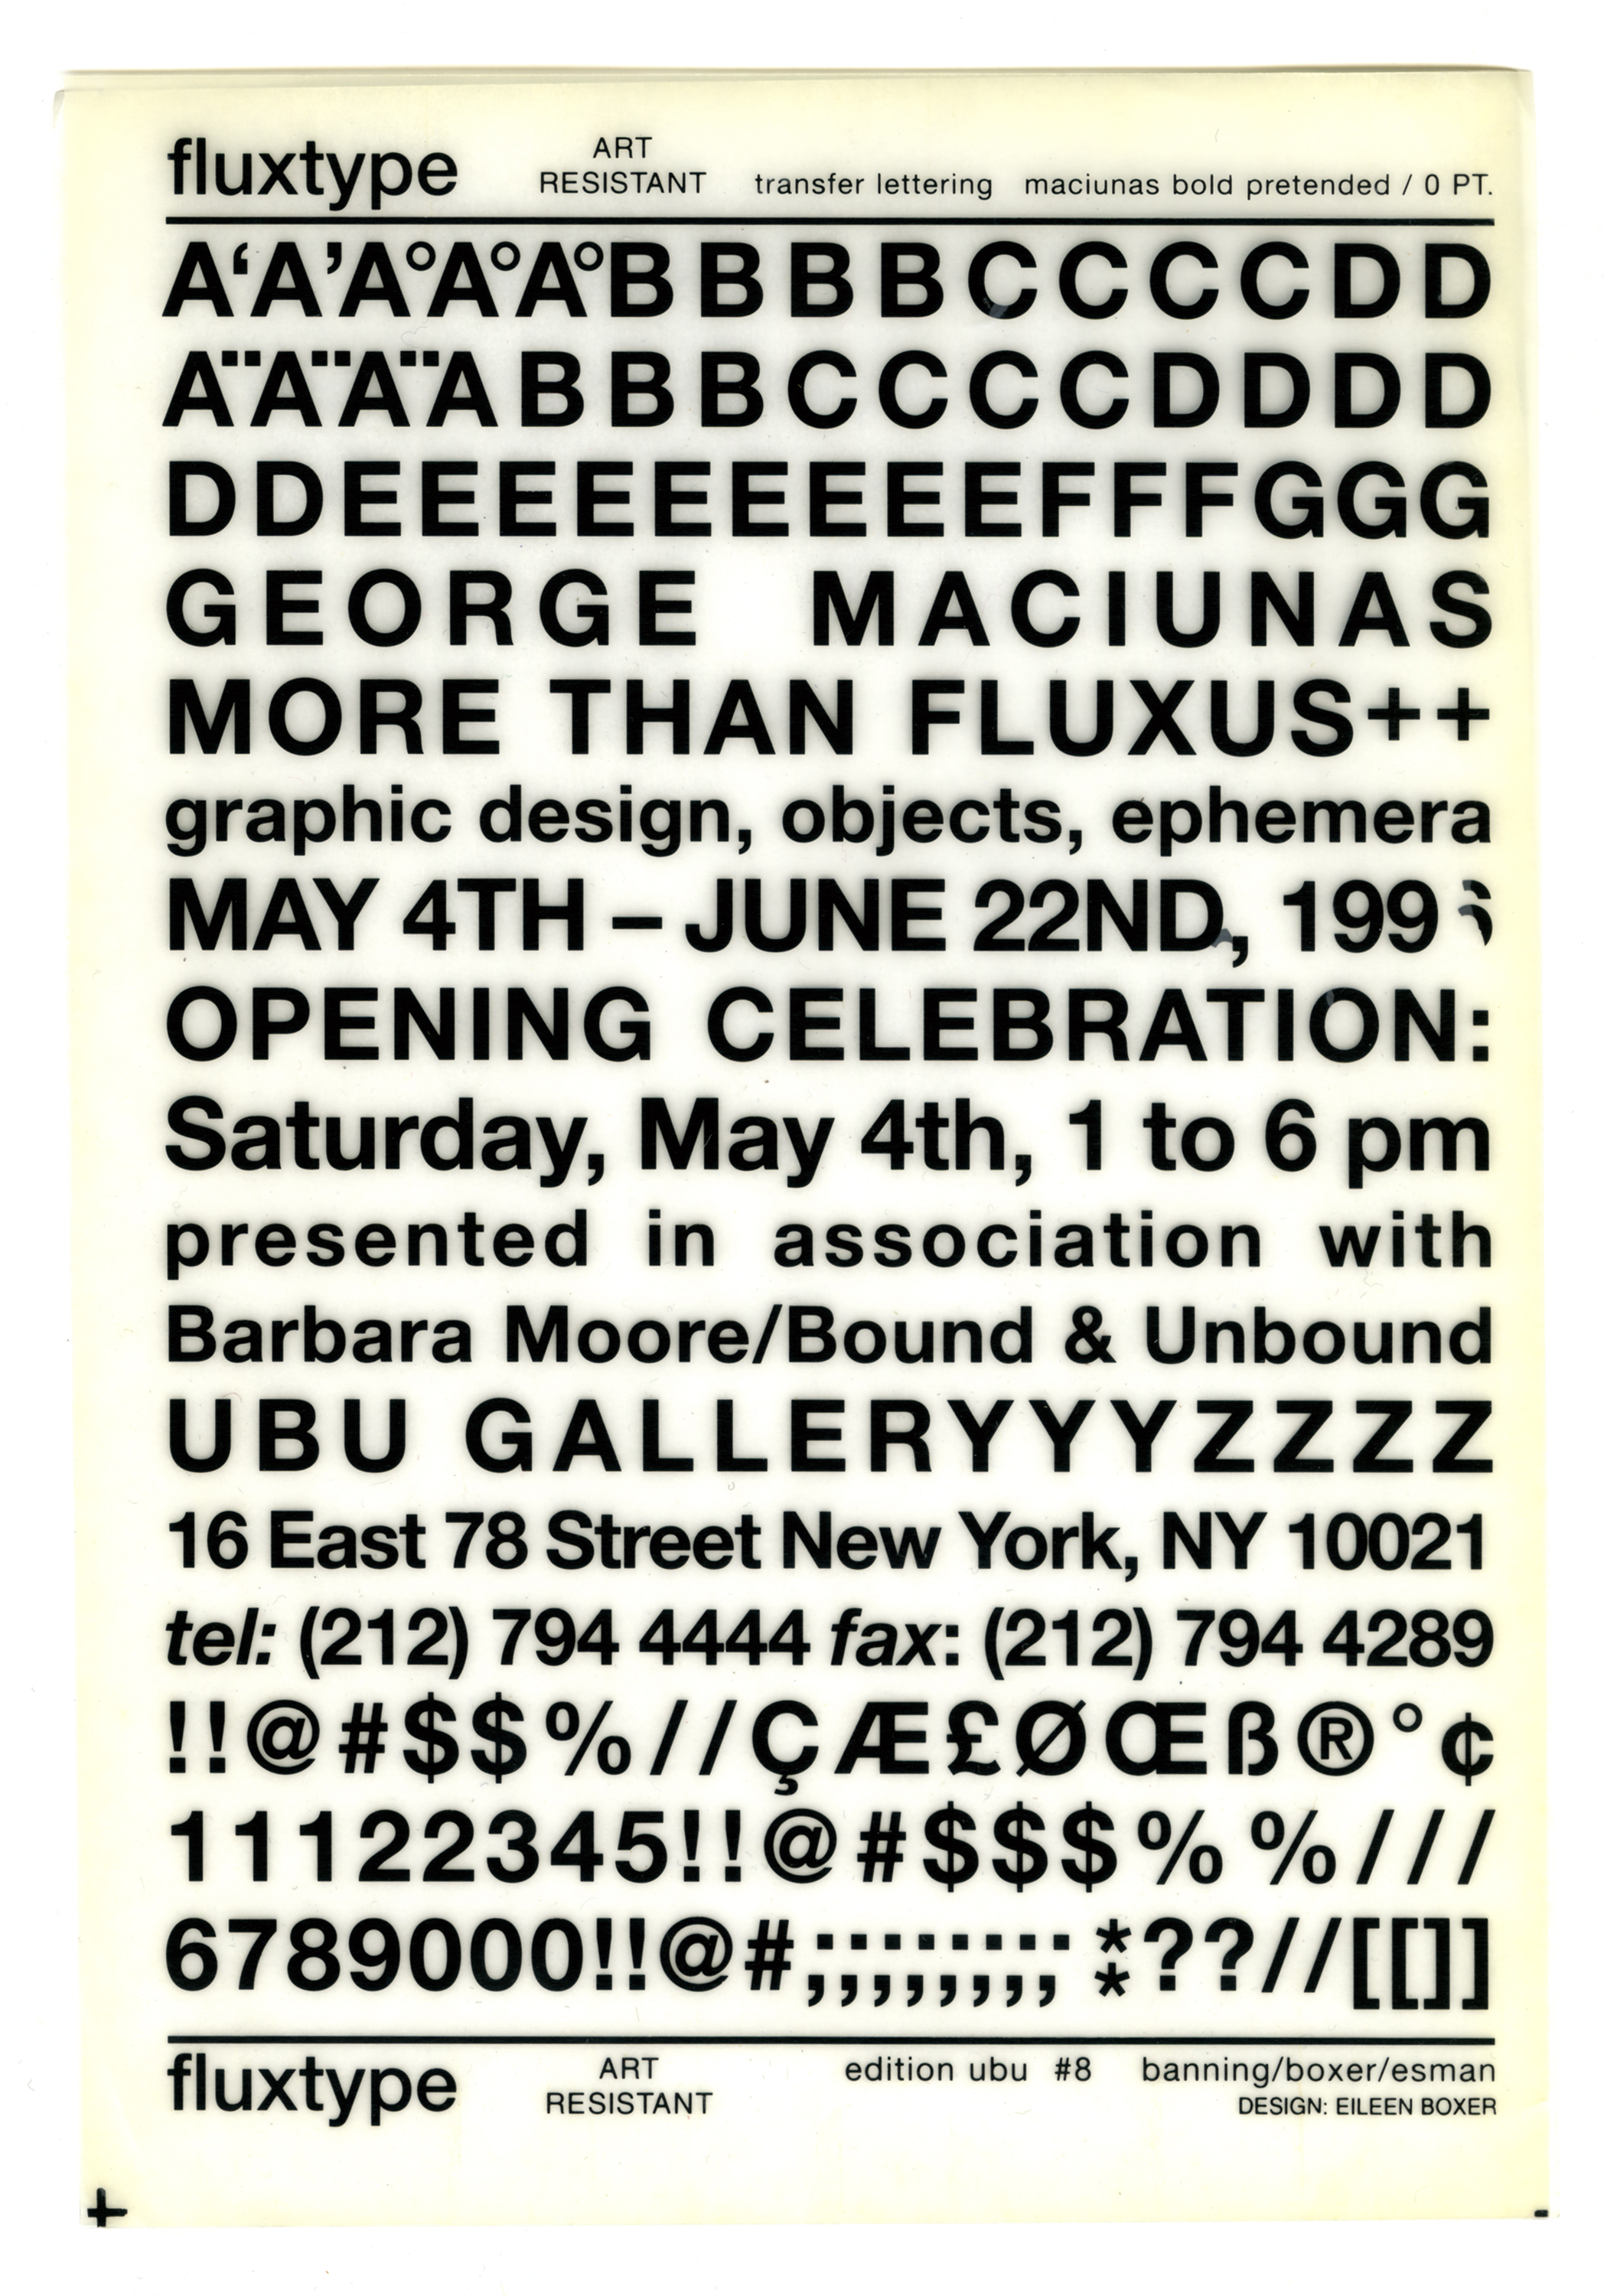 Announcement of George Maciunas exhibition in the form of a page of transfer lettering.